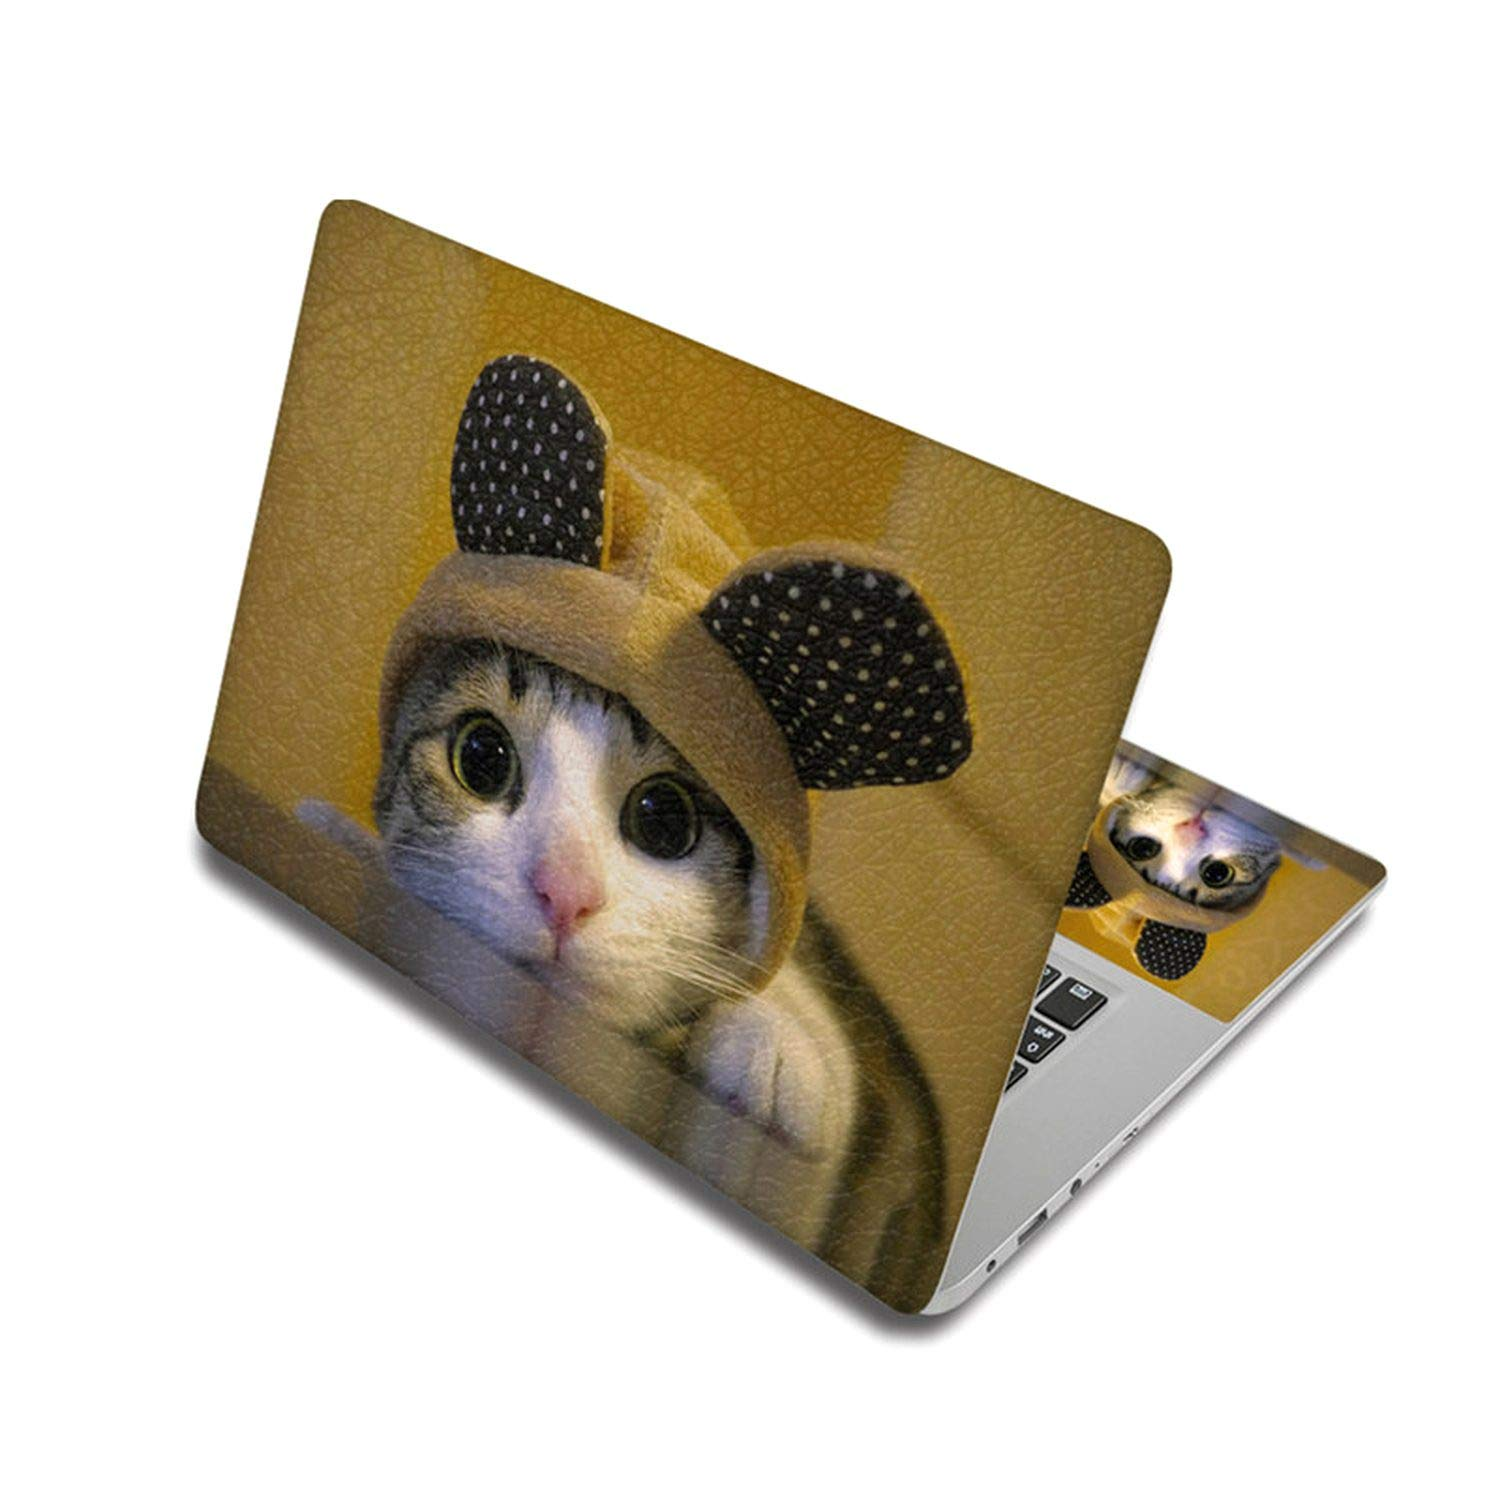 Cute Cat Pattern Sticker For Laptop Skin Removable Notebook Stickers Pc Decal For Xiaomi Pro/Mac Air/Toshiba/Hp,Custom Other Size,Laptop Skin 1